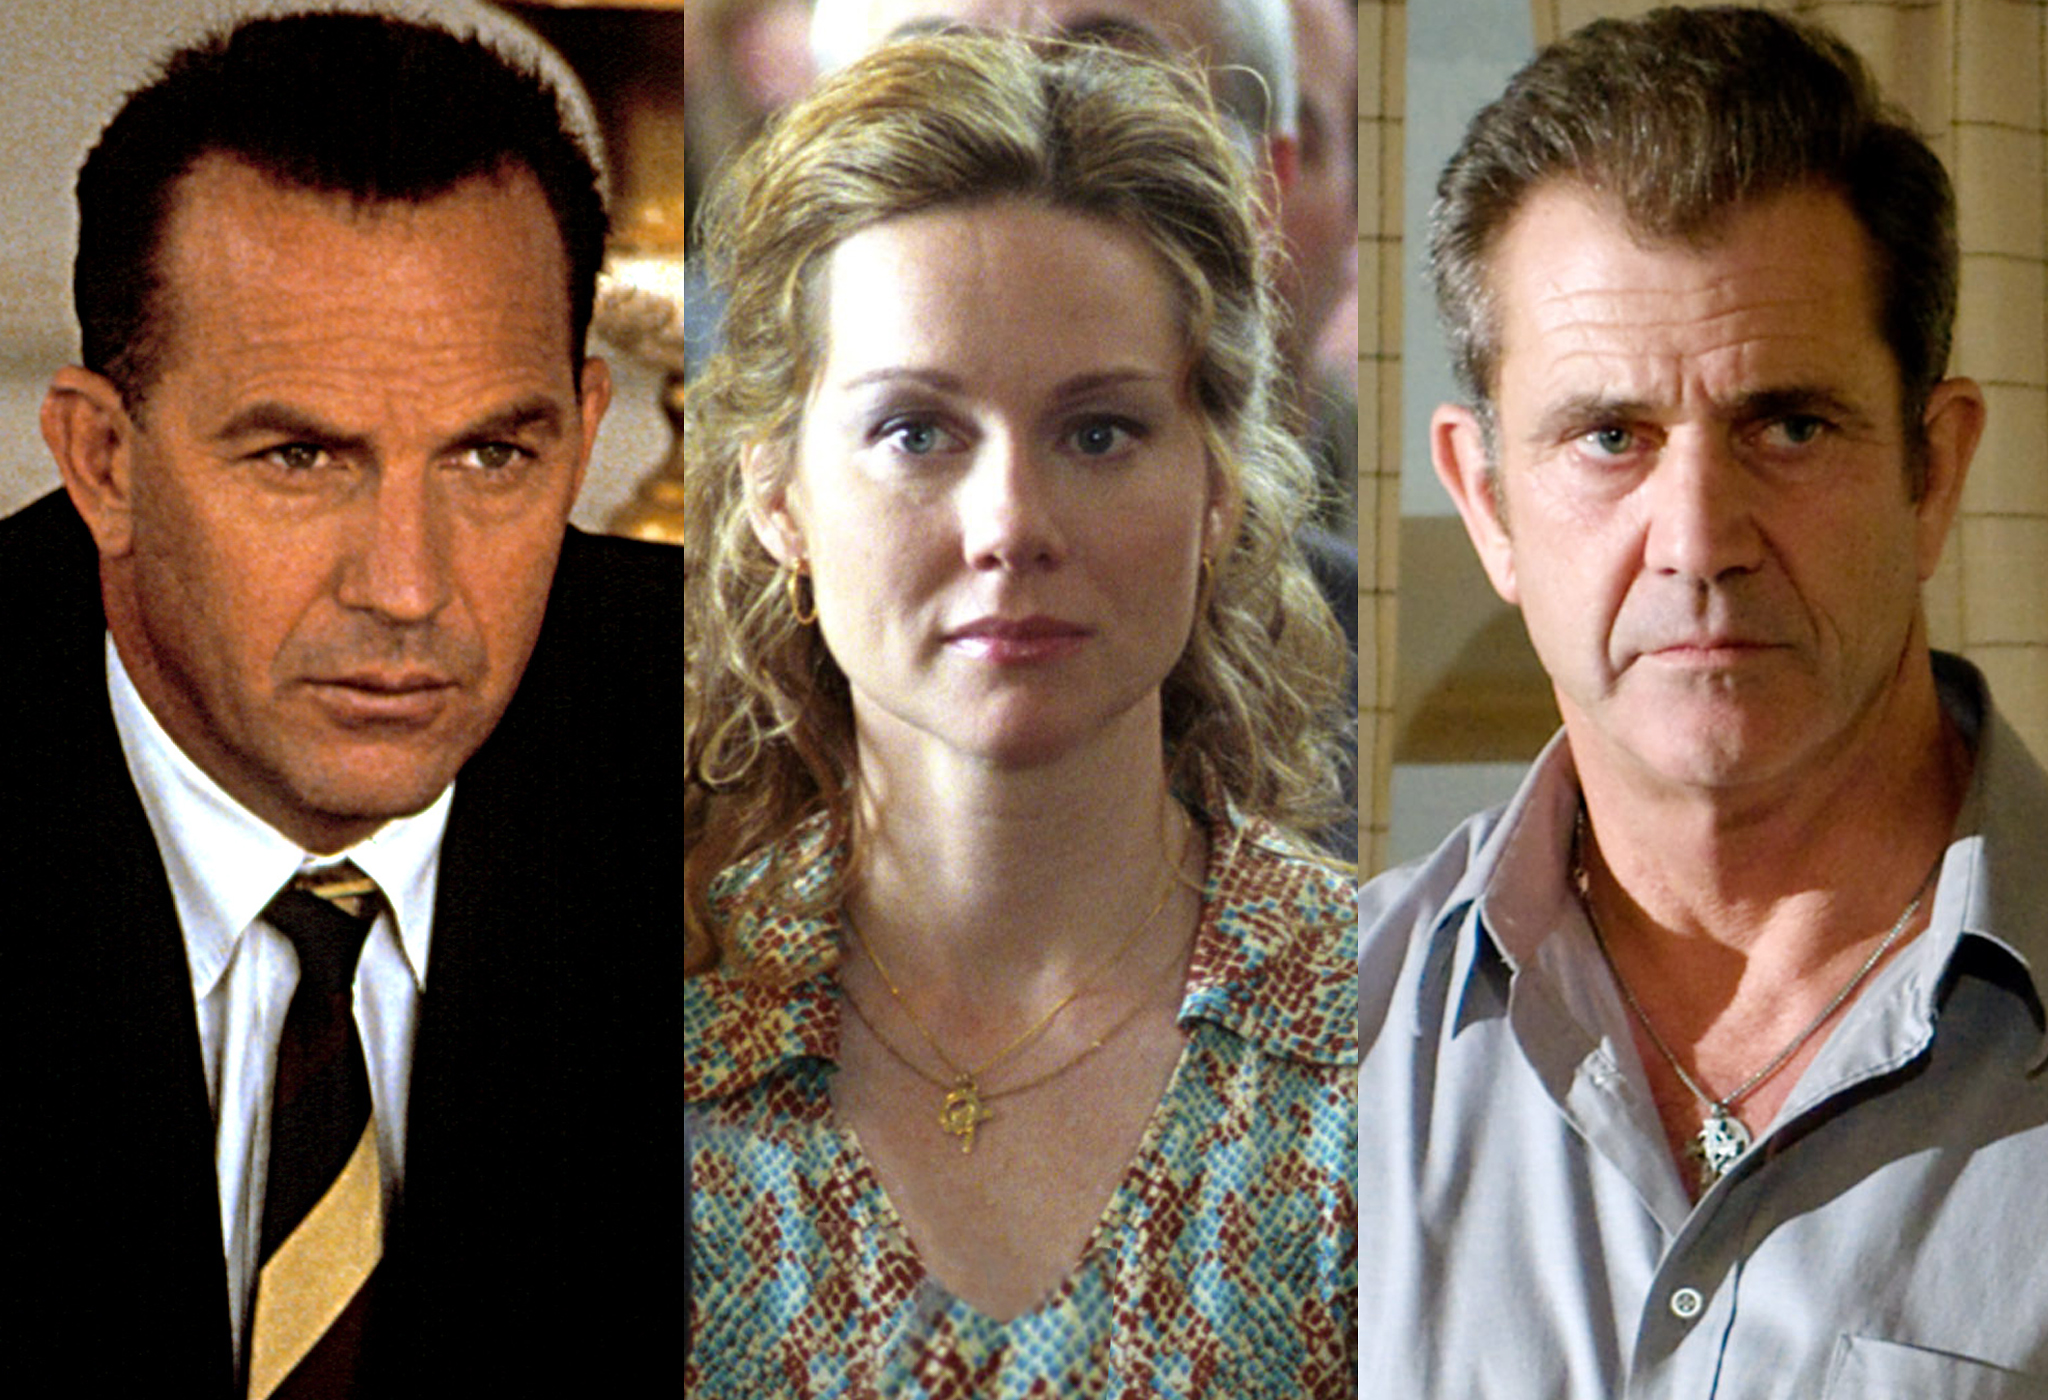 Kevin Costner in 'Thirteen Days', Laura Linney in 'Mystic River', Mel Gibson in 'Edge of Darkness' (Photo: Everett)